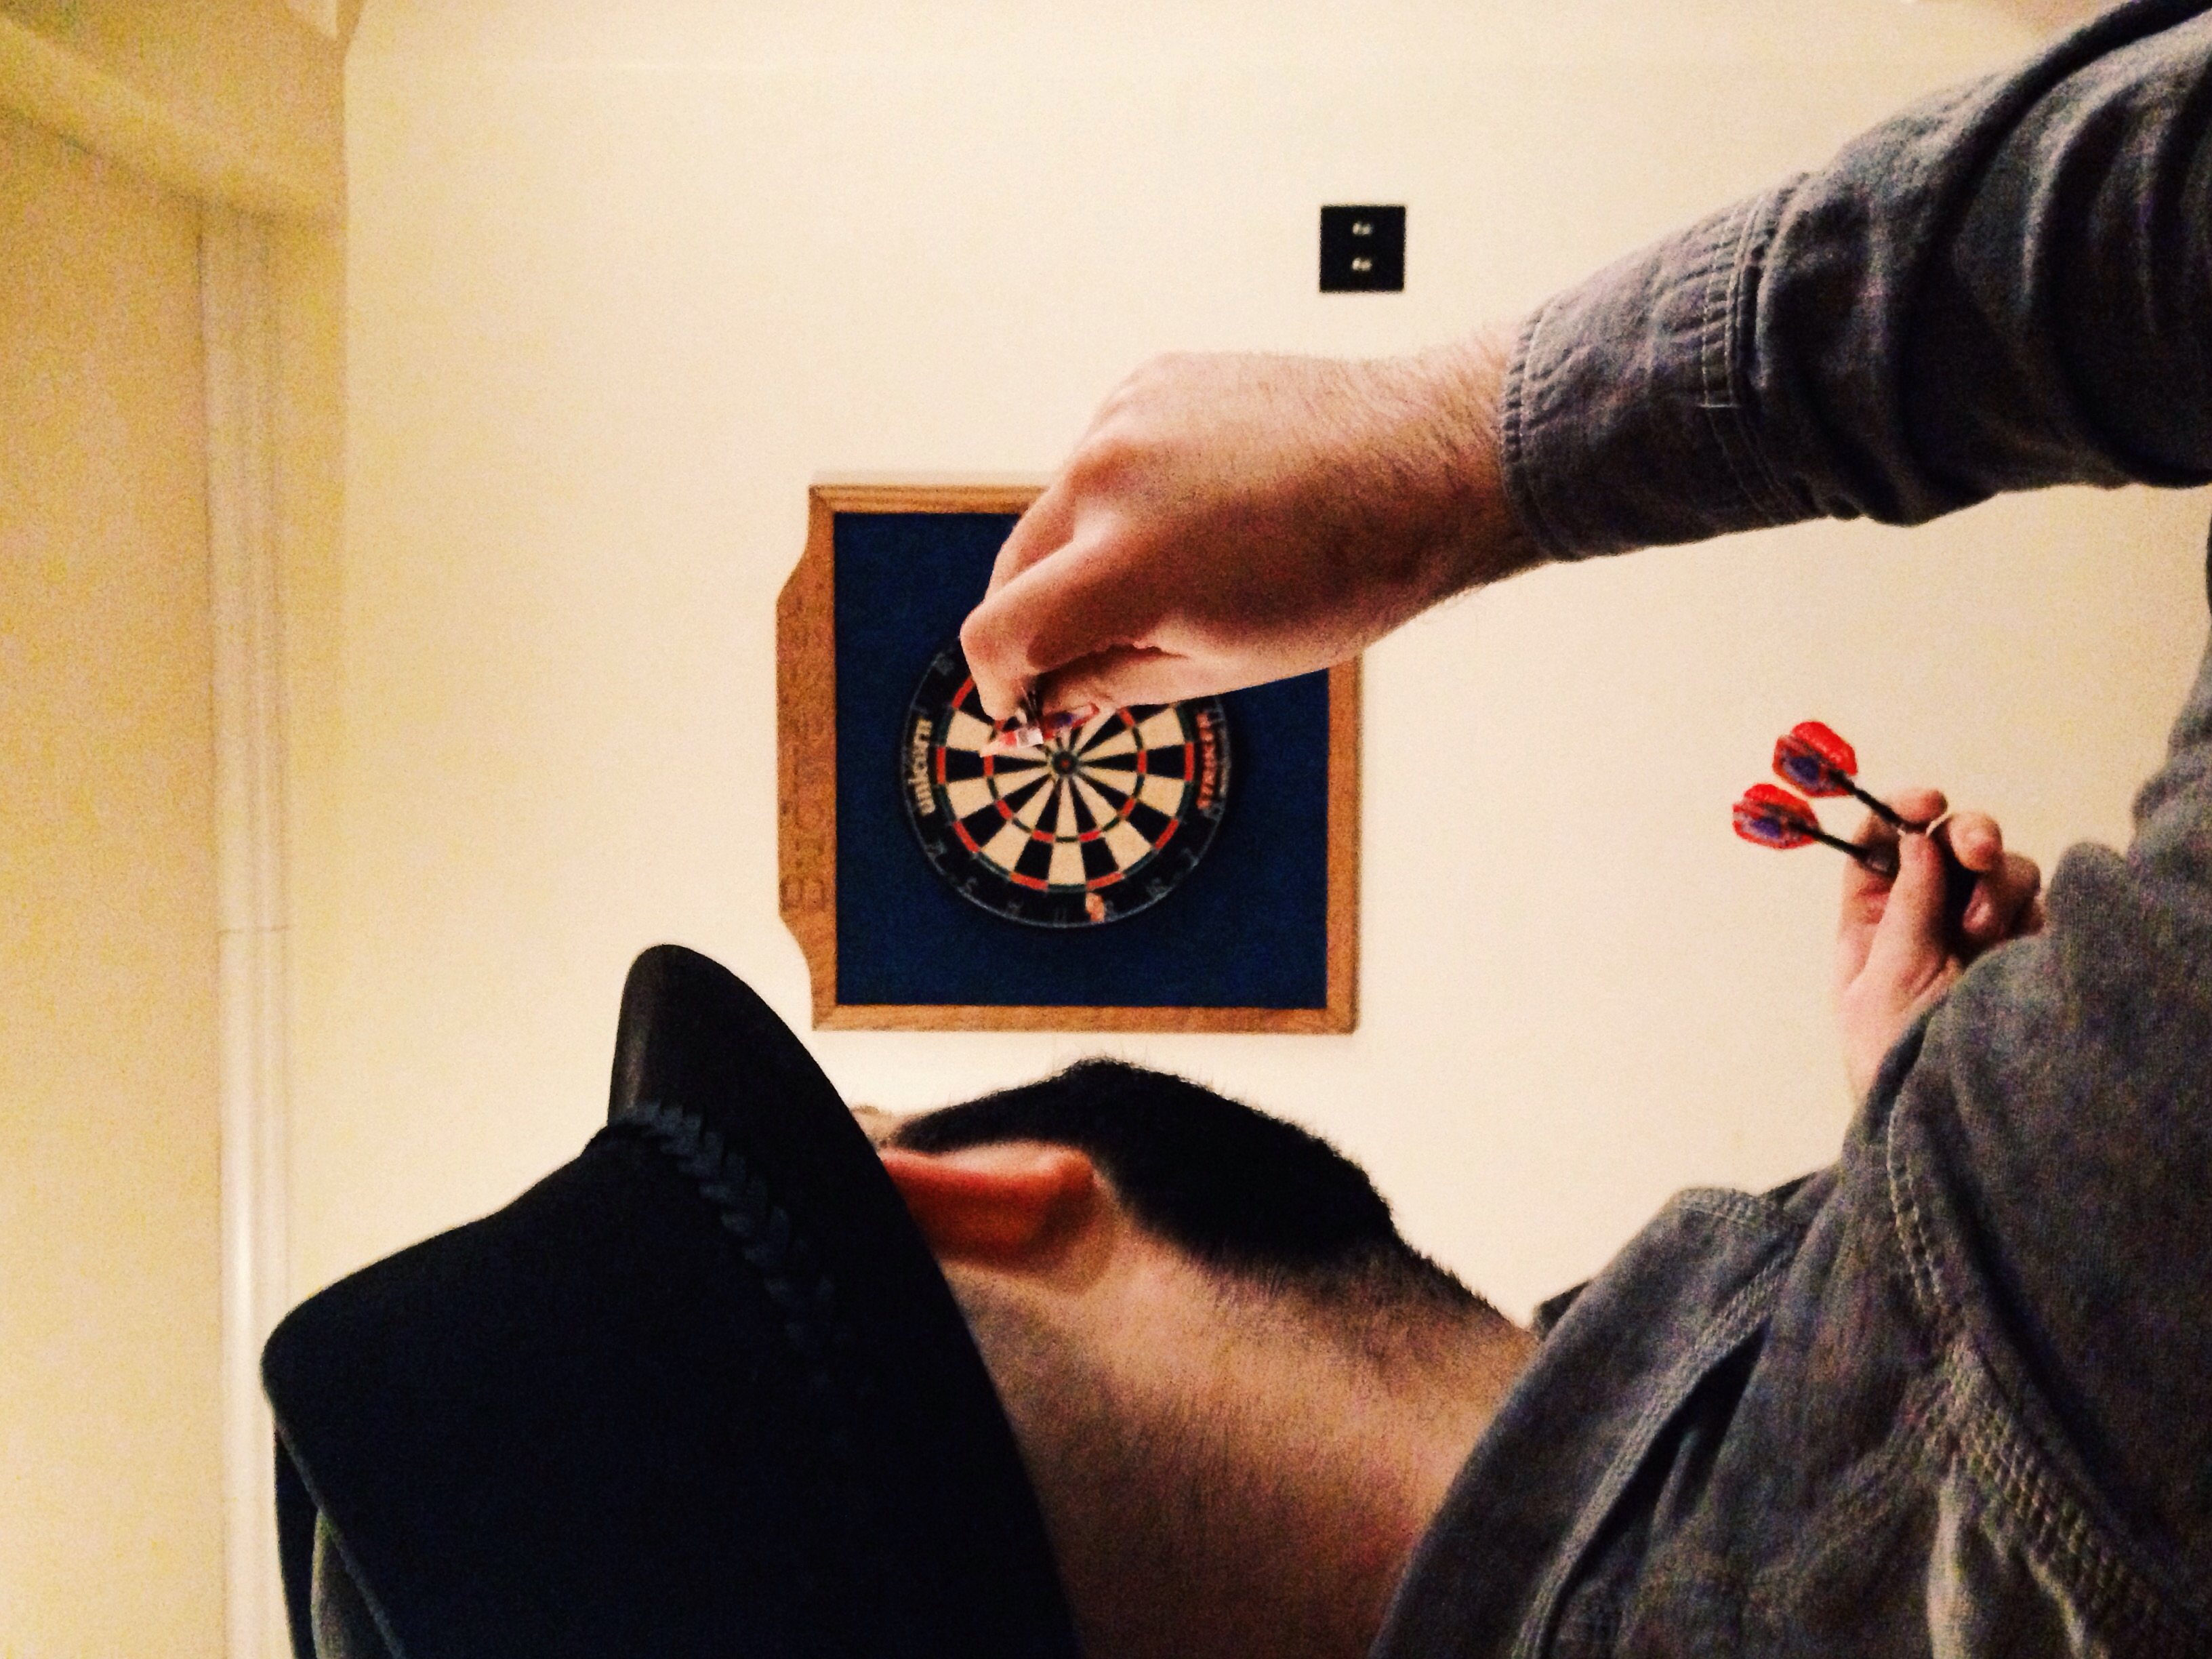 Some late night darts to finish out the evening